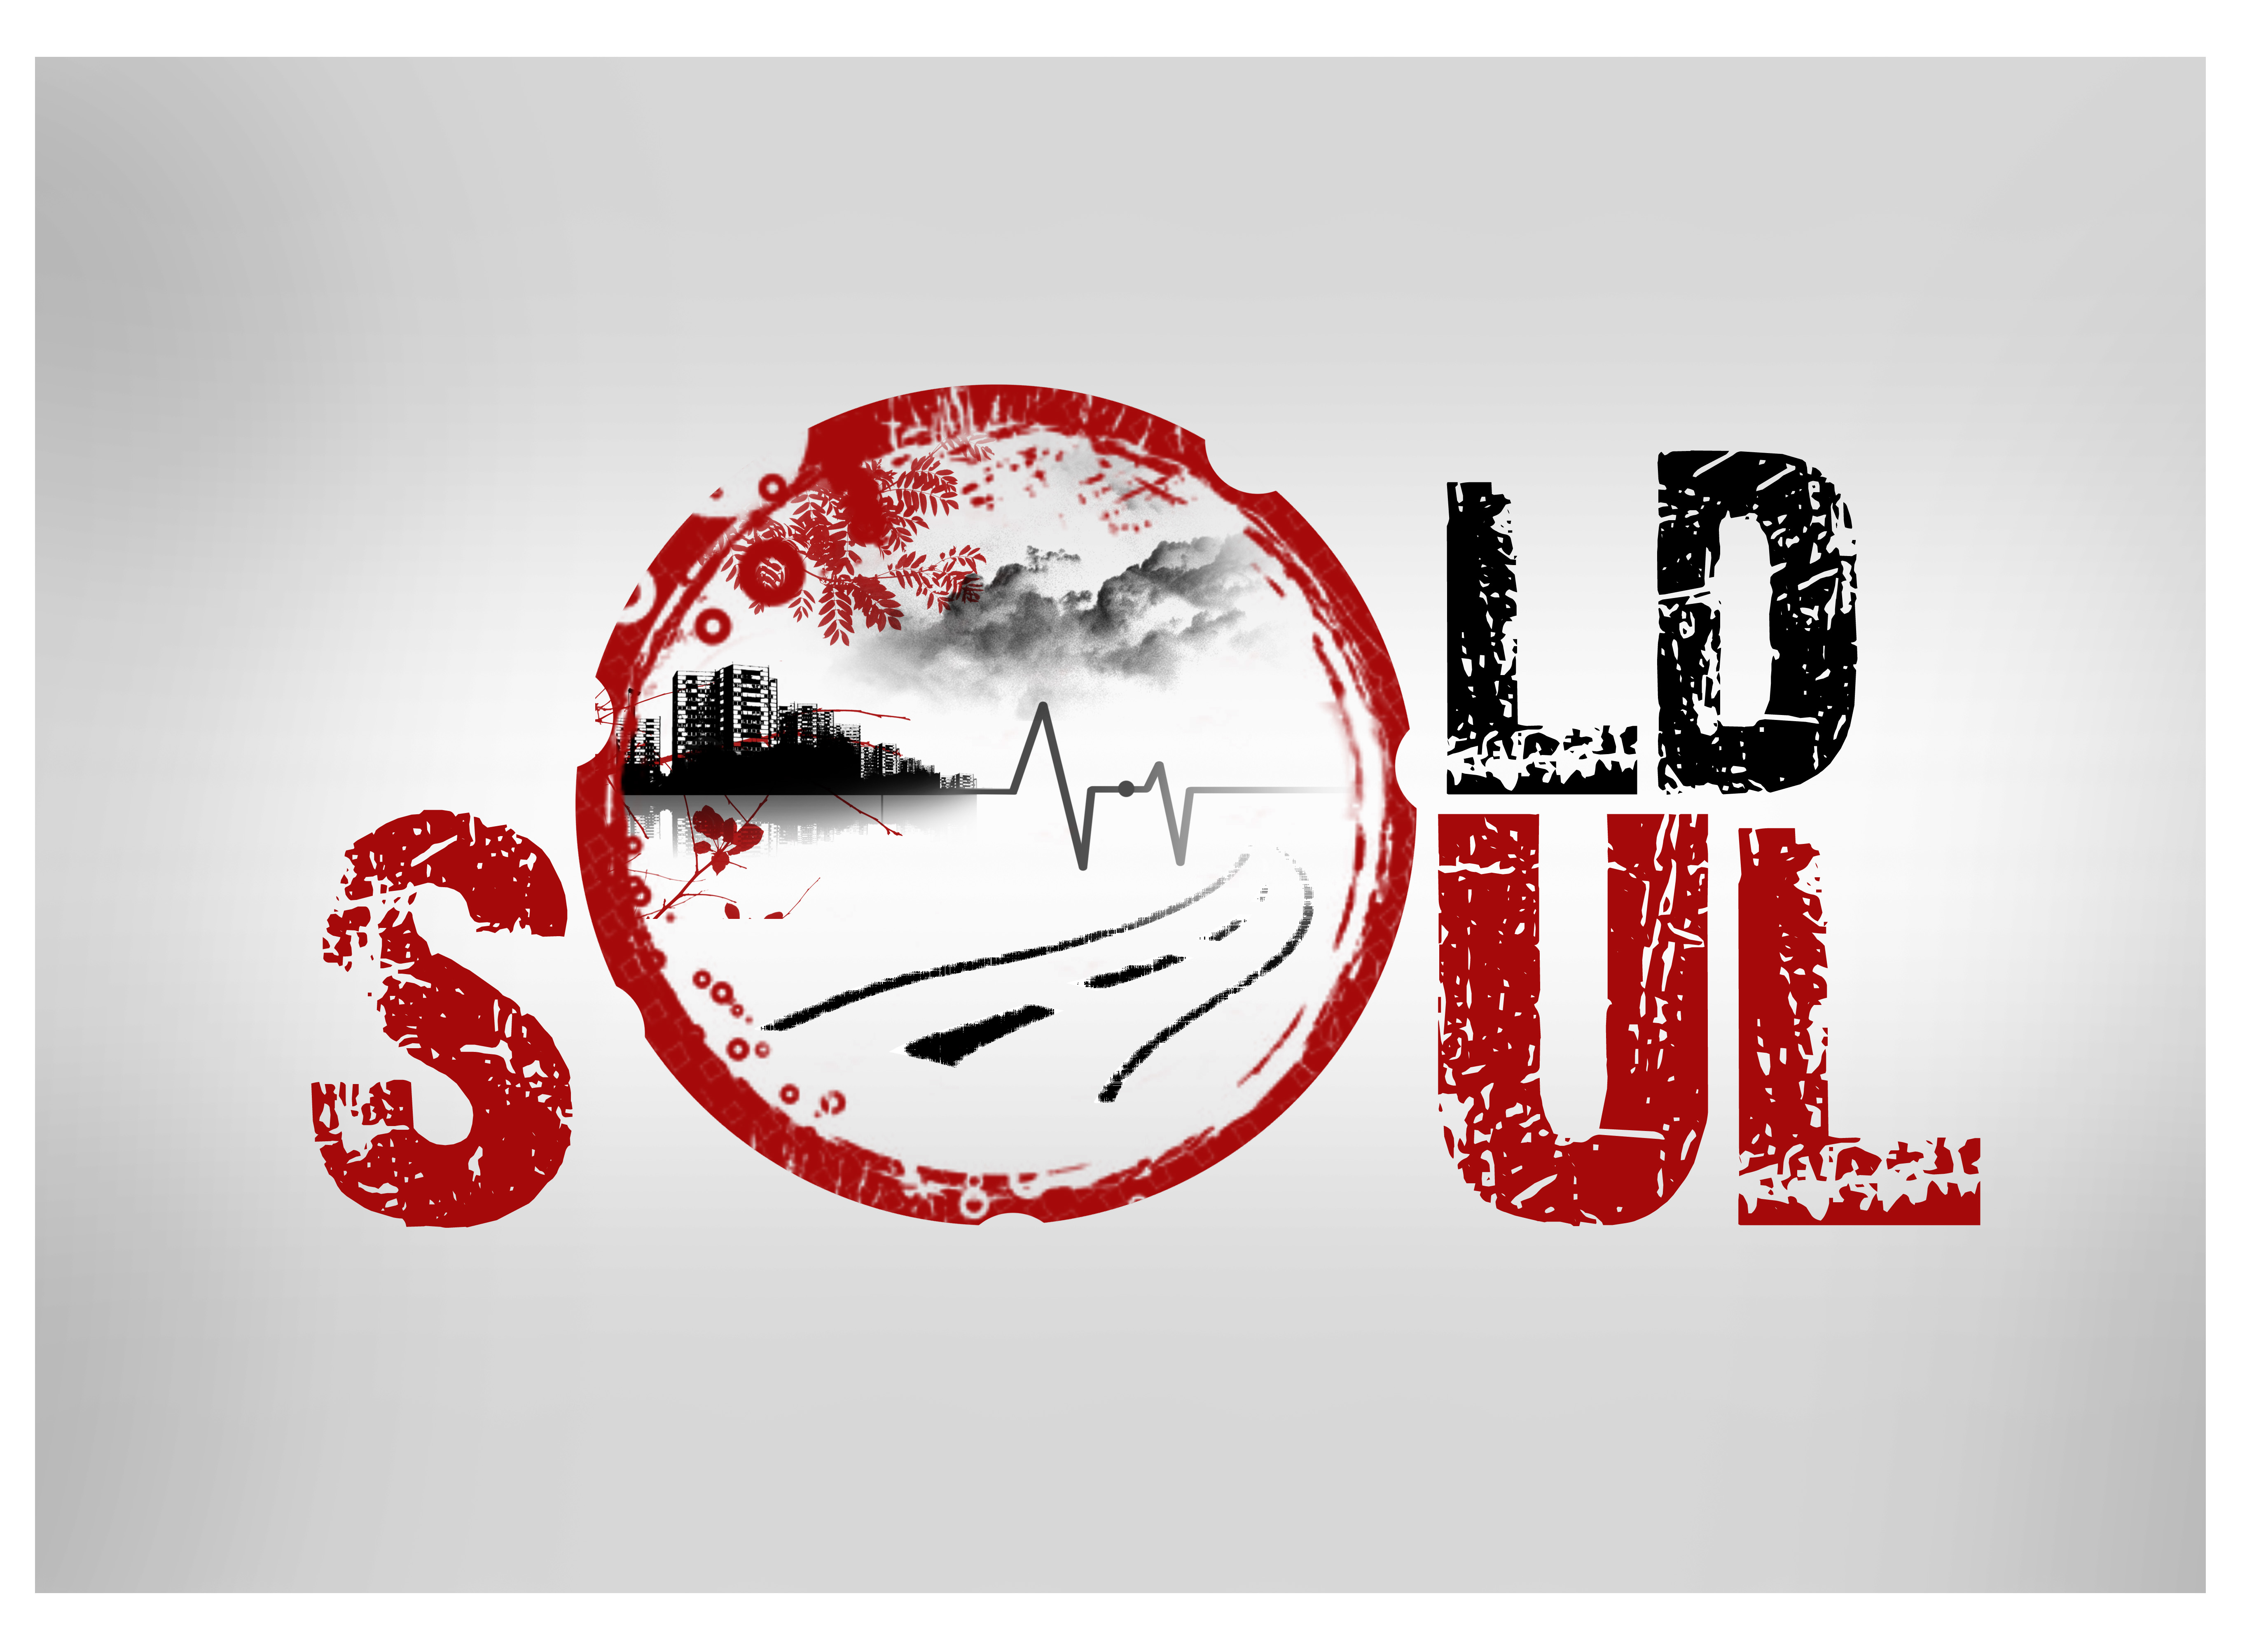 Logo Design by Sandip Kumar - Entry No. 85 in the Logo Design Contest Unique Logo Design Wanted for Old Soul.